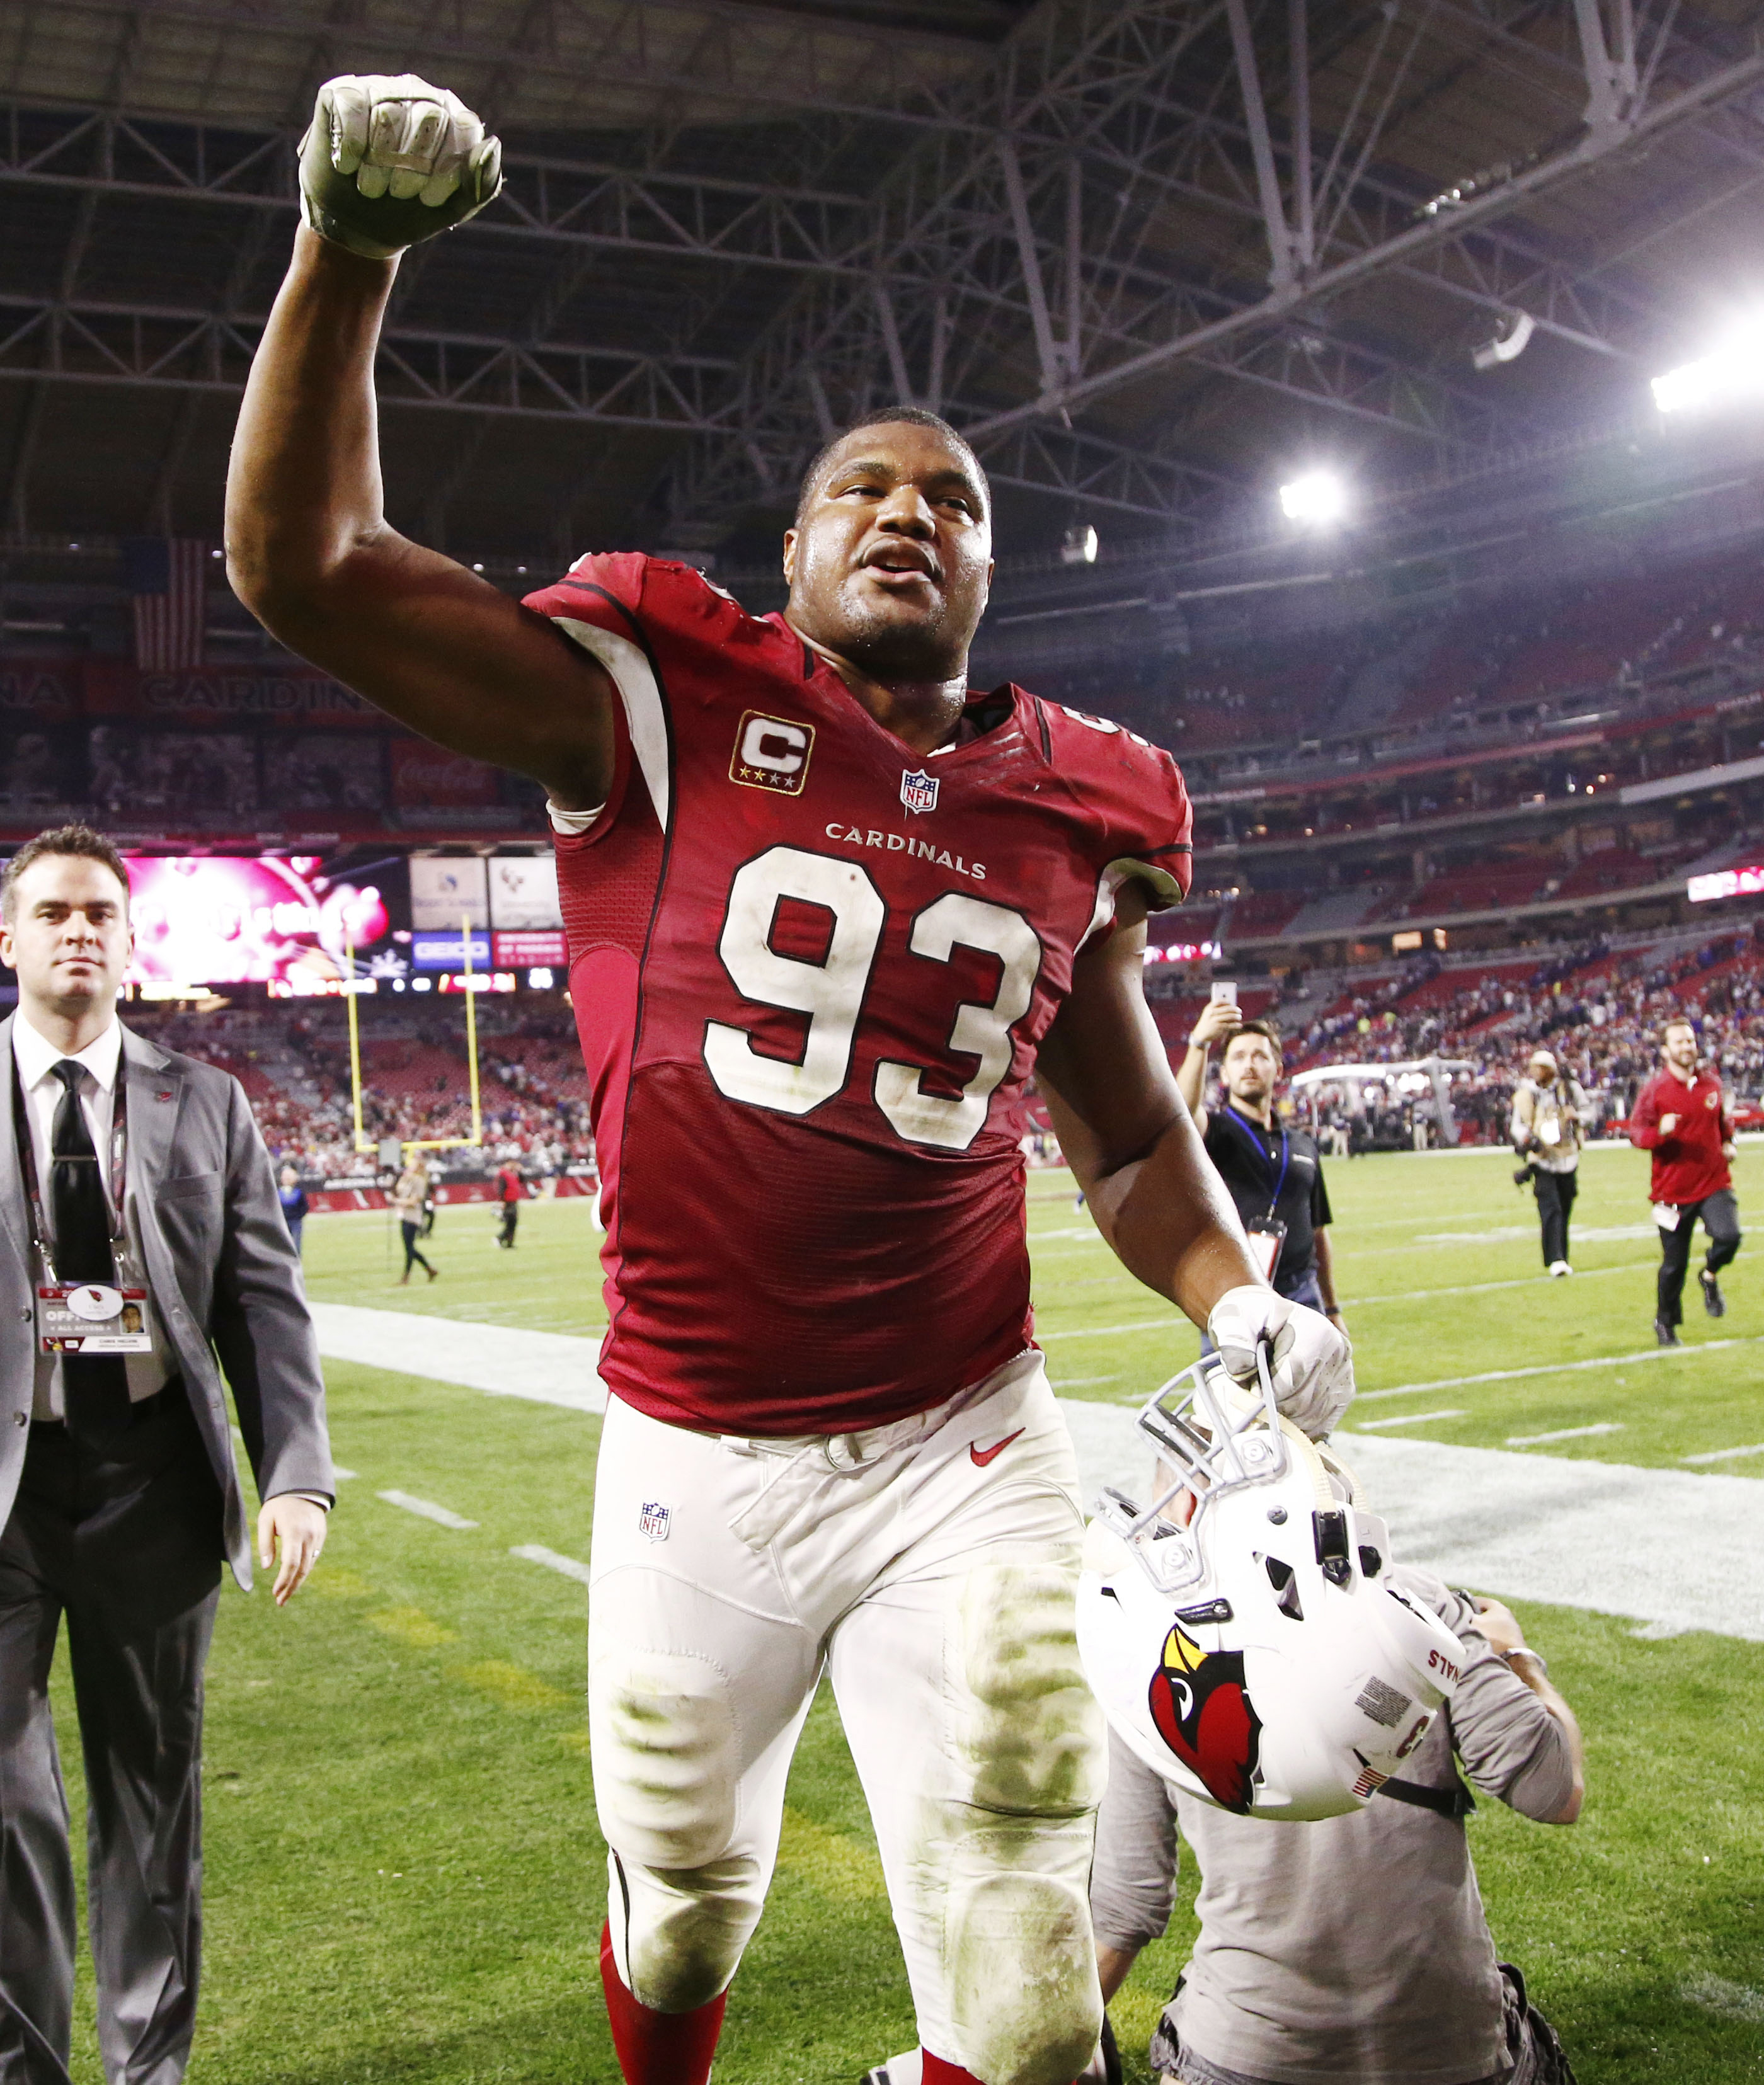 Arizona Cardinals Calais Campbell celebrates a victory over the Minnesota Vikings after an NFL football game Thursday, Dec. 10, 2015, in Glendale, Ariz. (Rob Schumacher/The Arizona Republic via AP)  MARICOPA COUNTY OUT; MAGS OUT; NO SALES; MANDATORY CREDI